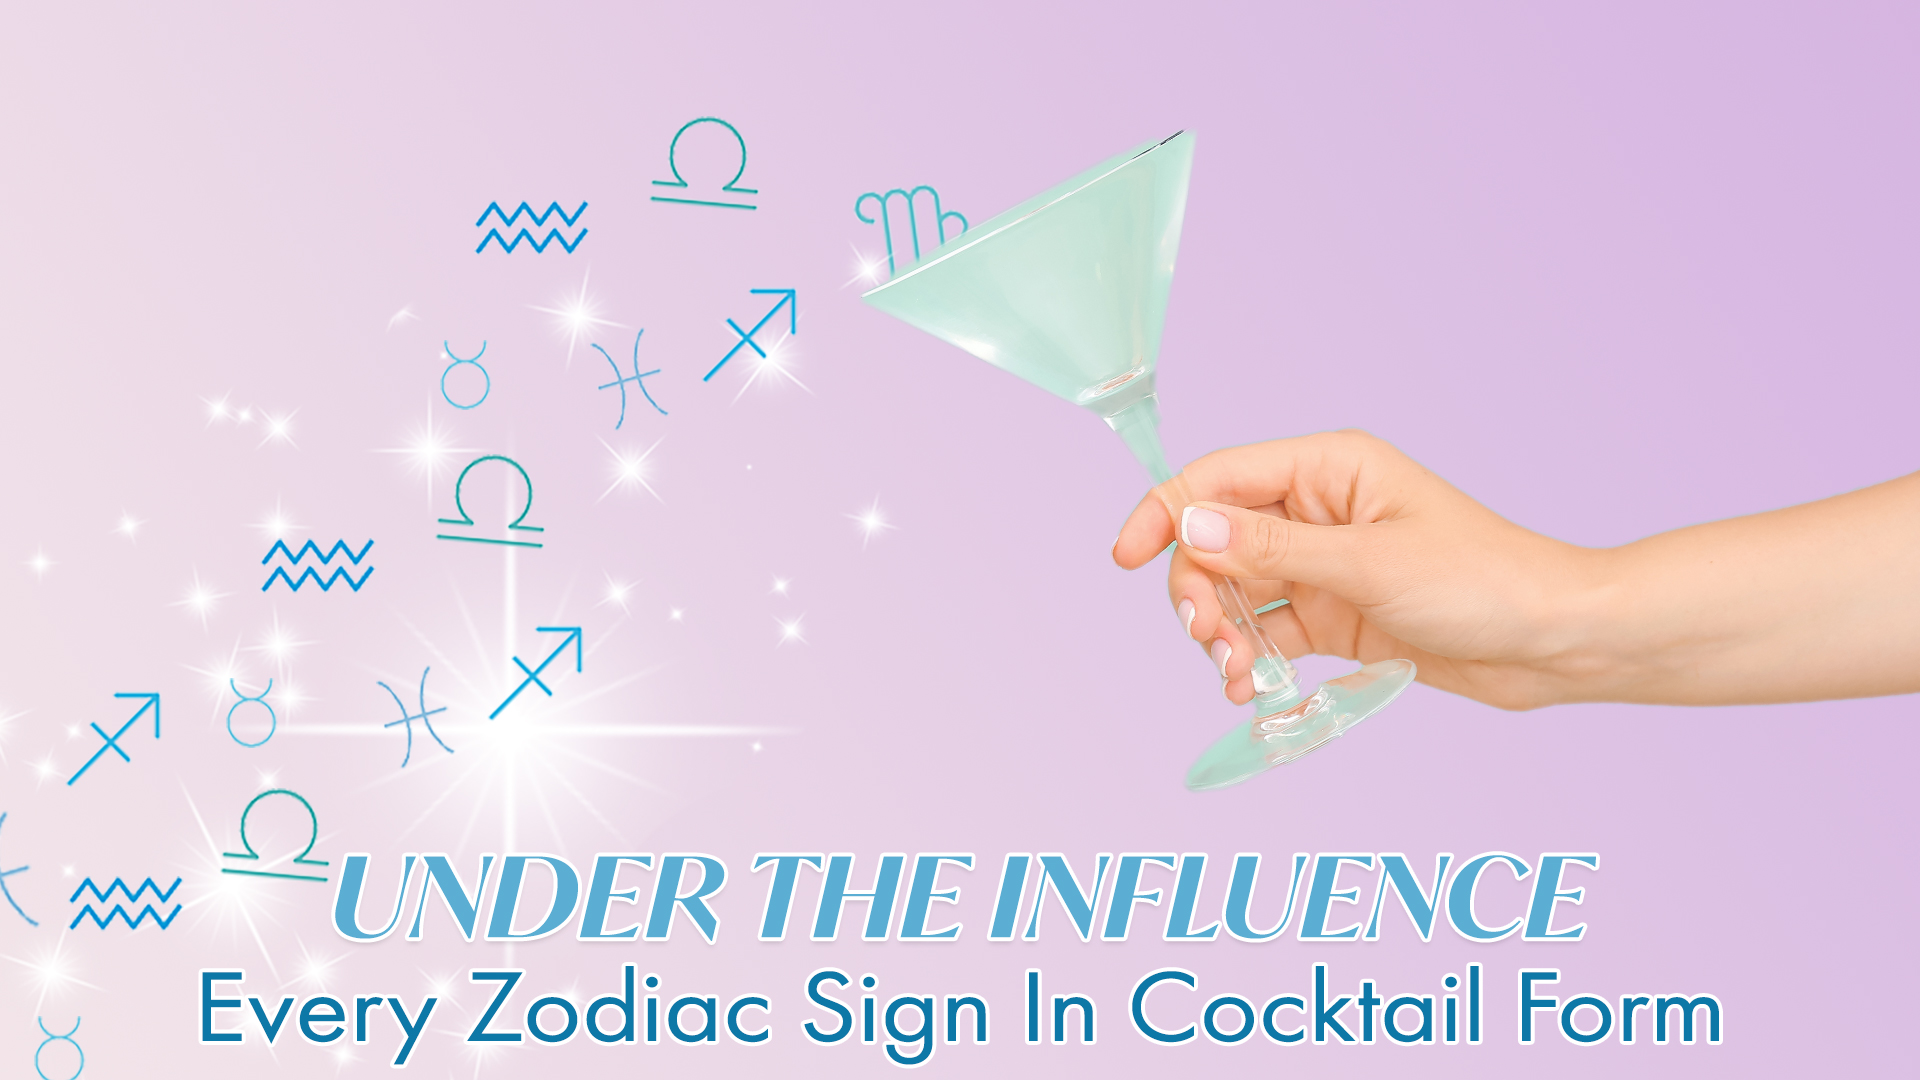 All 12 Zodiac Signs In Cocktail Form, Recipes Included